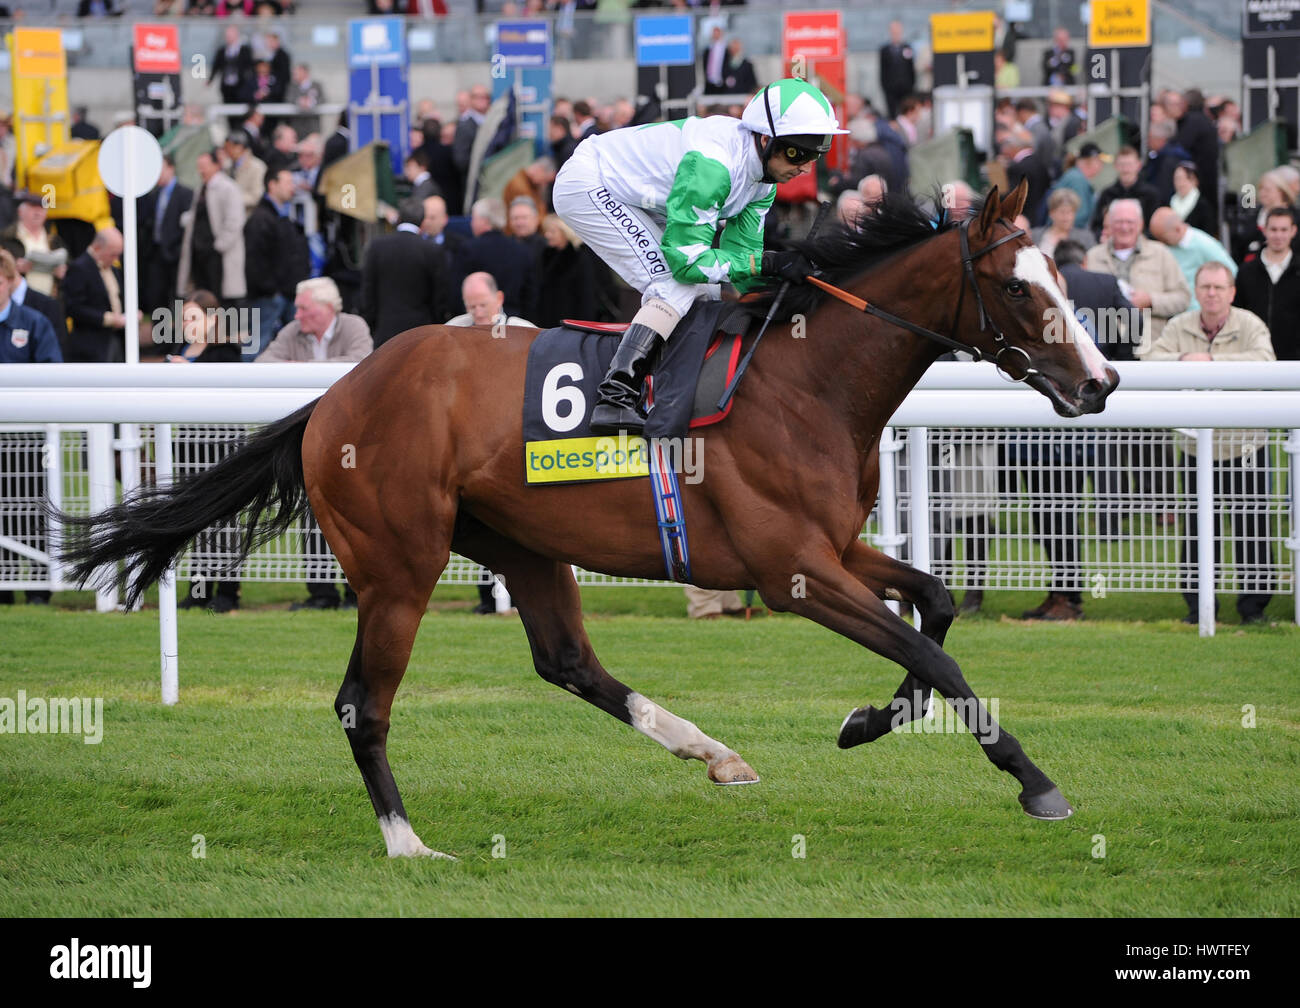 MONITOR CLOSELY RIDDEN BY ALAN MUNRO YORK RACECOURSE YORK ENGLAND 14 May 2009 - Stock Image